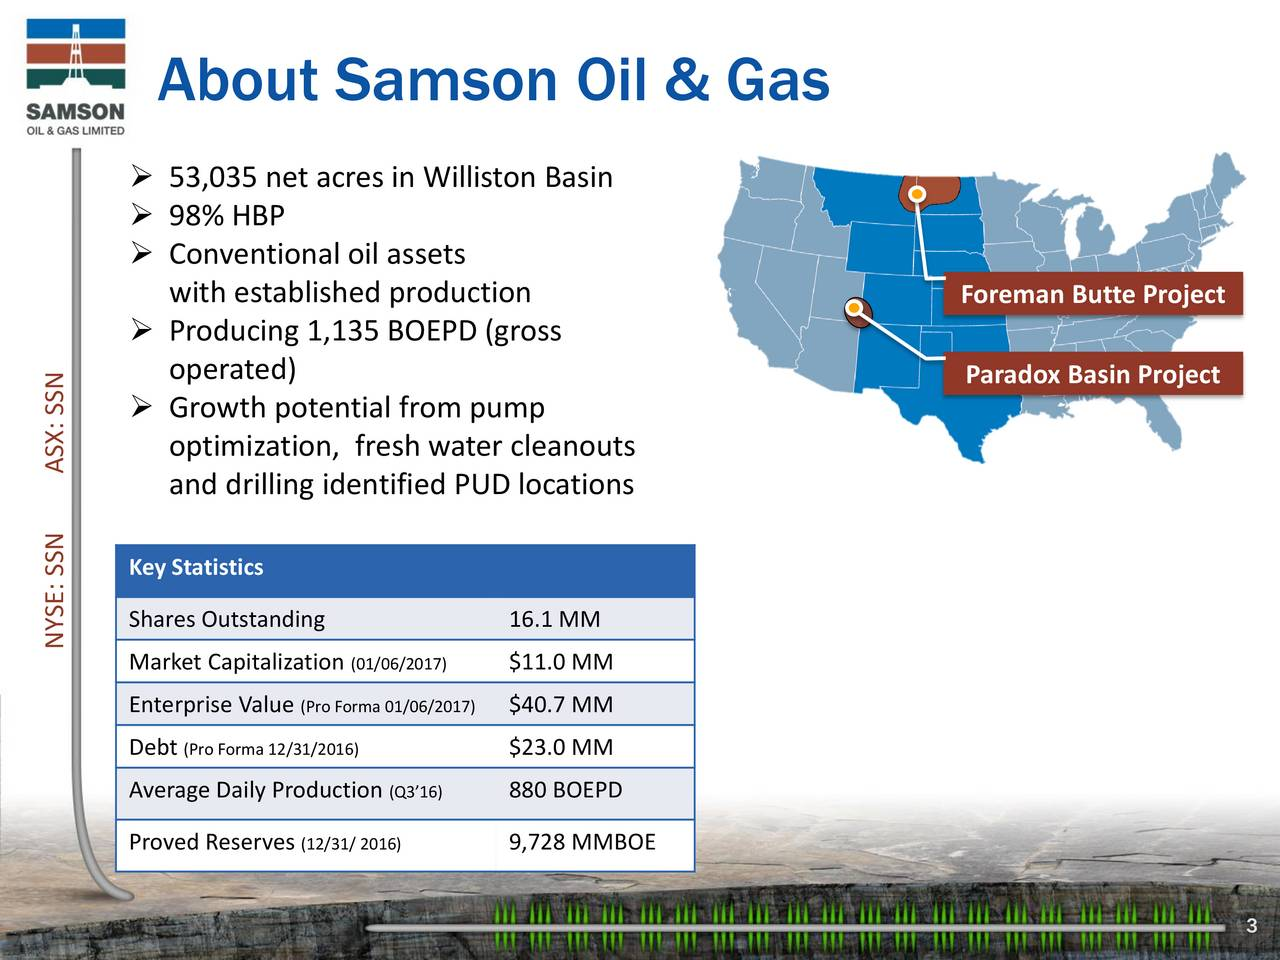 53,035 net acres in Williston Basin 98% HBP Conventional oil assets with established production Foreman Butte Project Producing 1,135 BOEPD (gross operated) Paradox Basin Project Growth potential from pump optimization, fresh water cleanouts and drilling identified PUD locations Key Statistics NYSE: SSNes OutASX: SSN 16.1 MM Market Capitalizati(01/06/2017) $11.0 MM Enterprise Valu(Pro Forma 01/06/$40.7 MM Debt (Pro Forma 12/31/2016) $23.0 MM Average Daily Producti(Q316) 880 BOEPD Proved Reserves(12/31/ 2016) 9,728 MMBOE 3